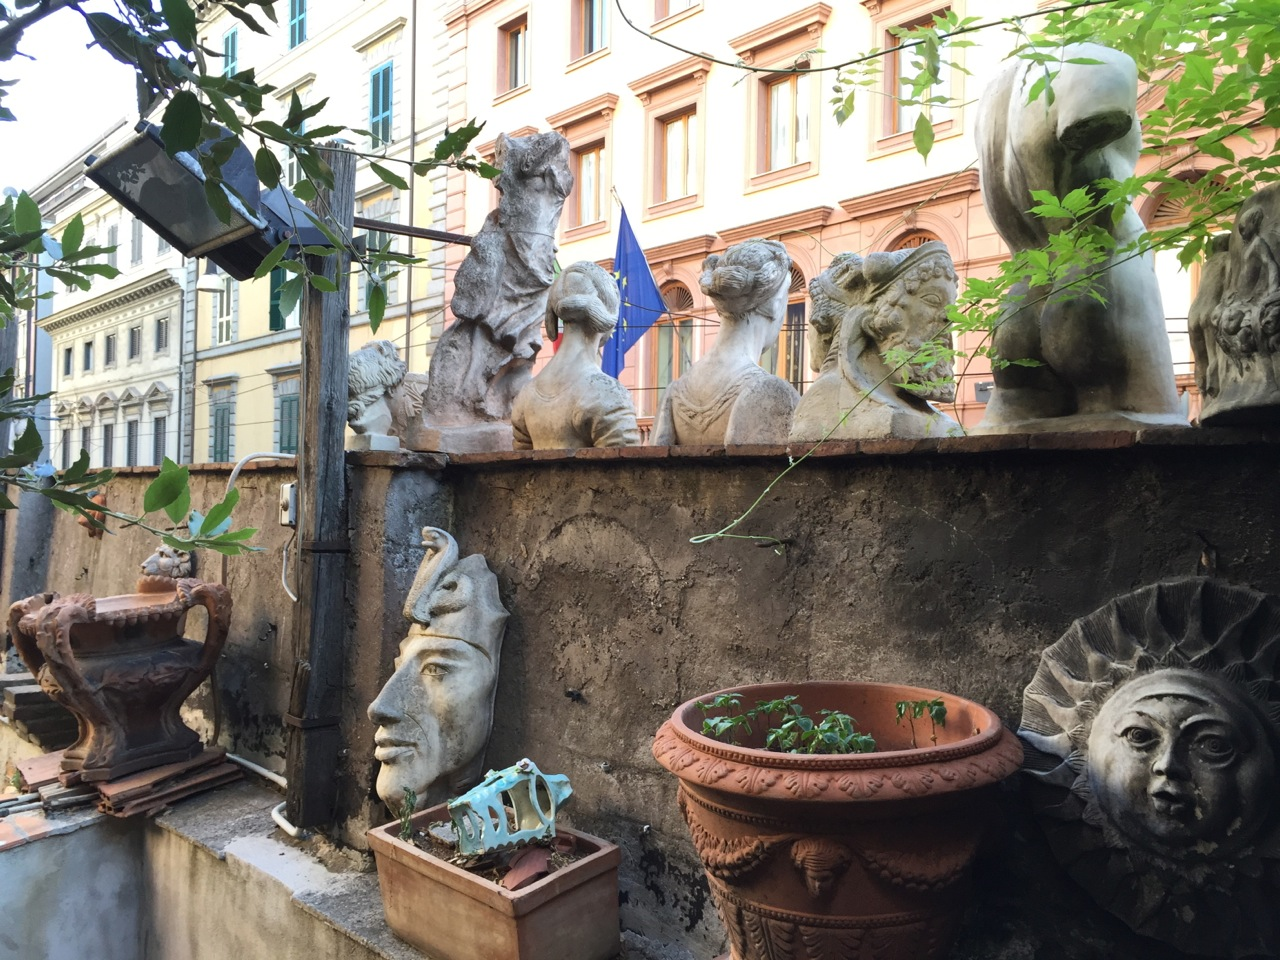 A cafe with a walled garden in Rome.